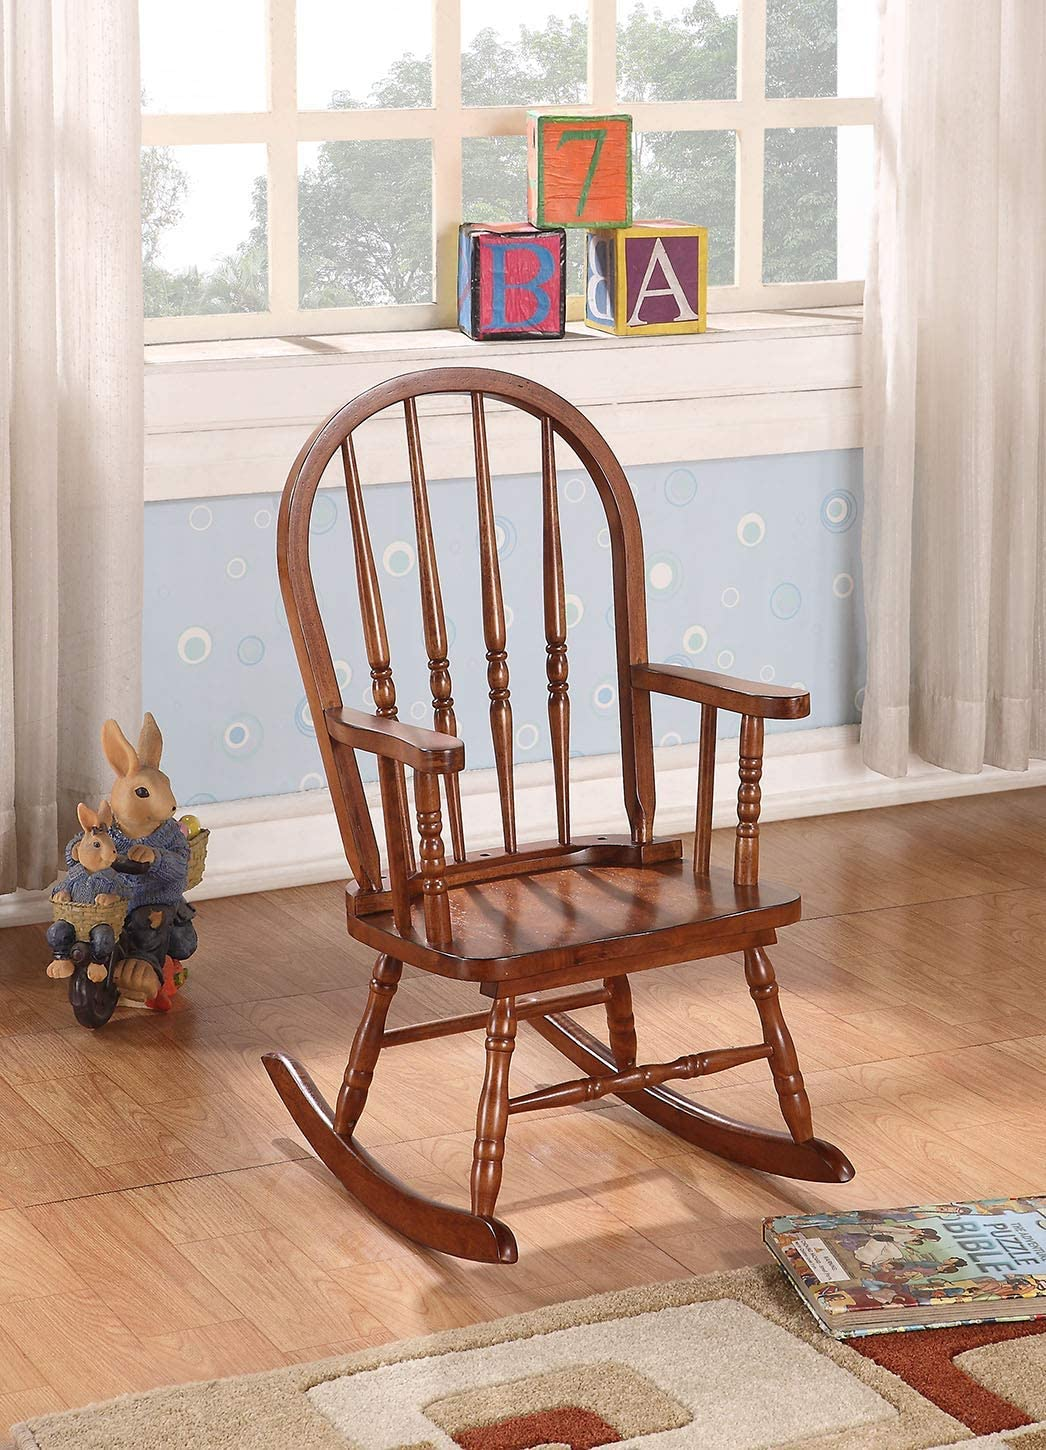 ACME Furniture 59215 Kloris Youth Rocking Chair